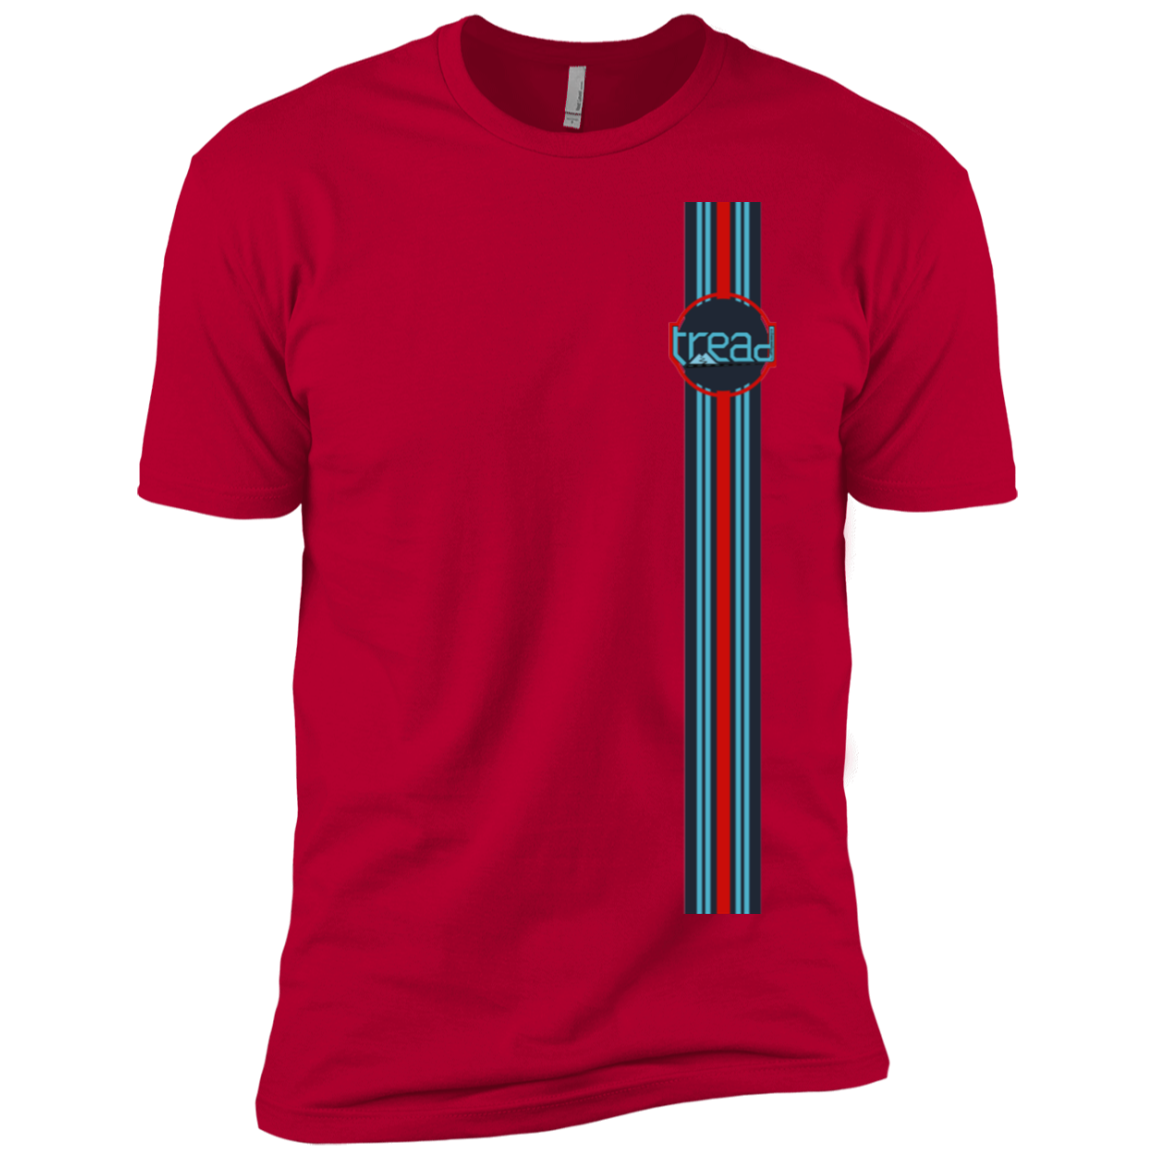 TREAD DESIGN | MARTINI F1 RACING homage  Premium Short Sleeve T-Shirt